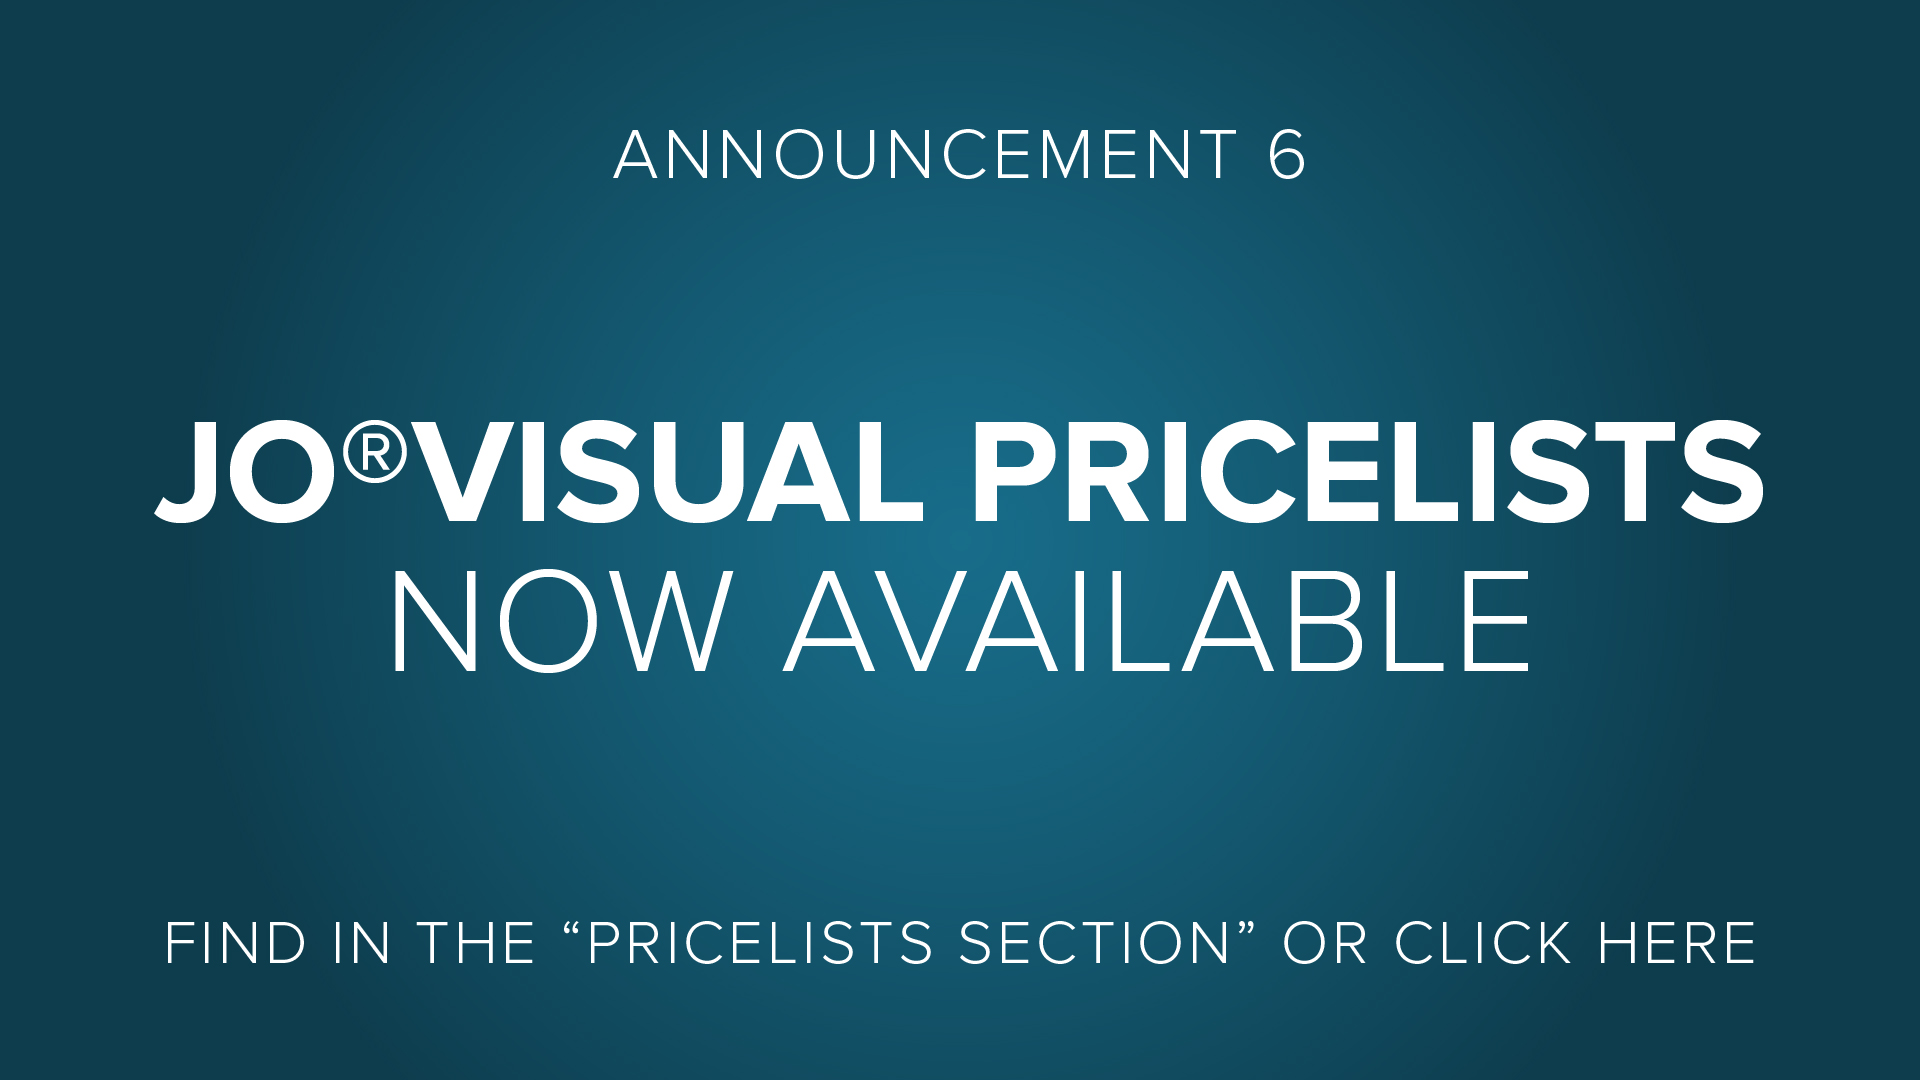 Announcement Buttons_06 JO Visual Pricelists.jpg